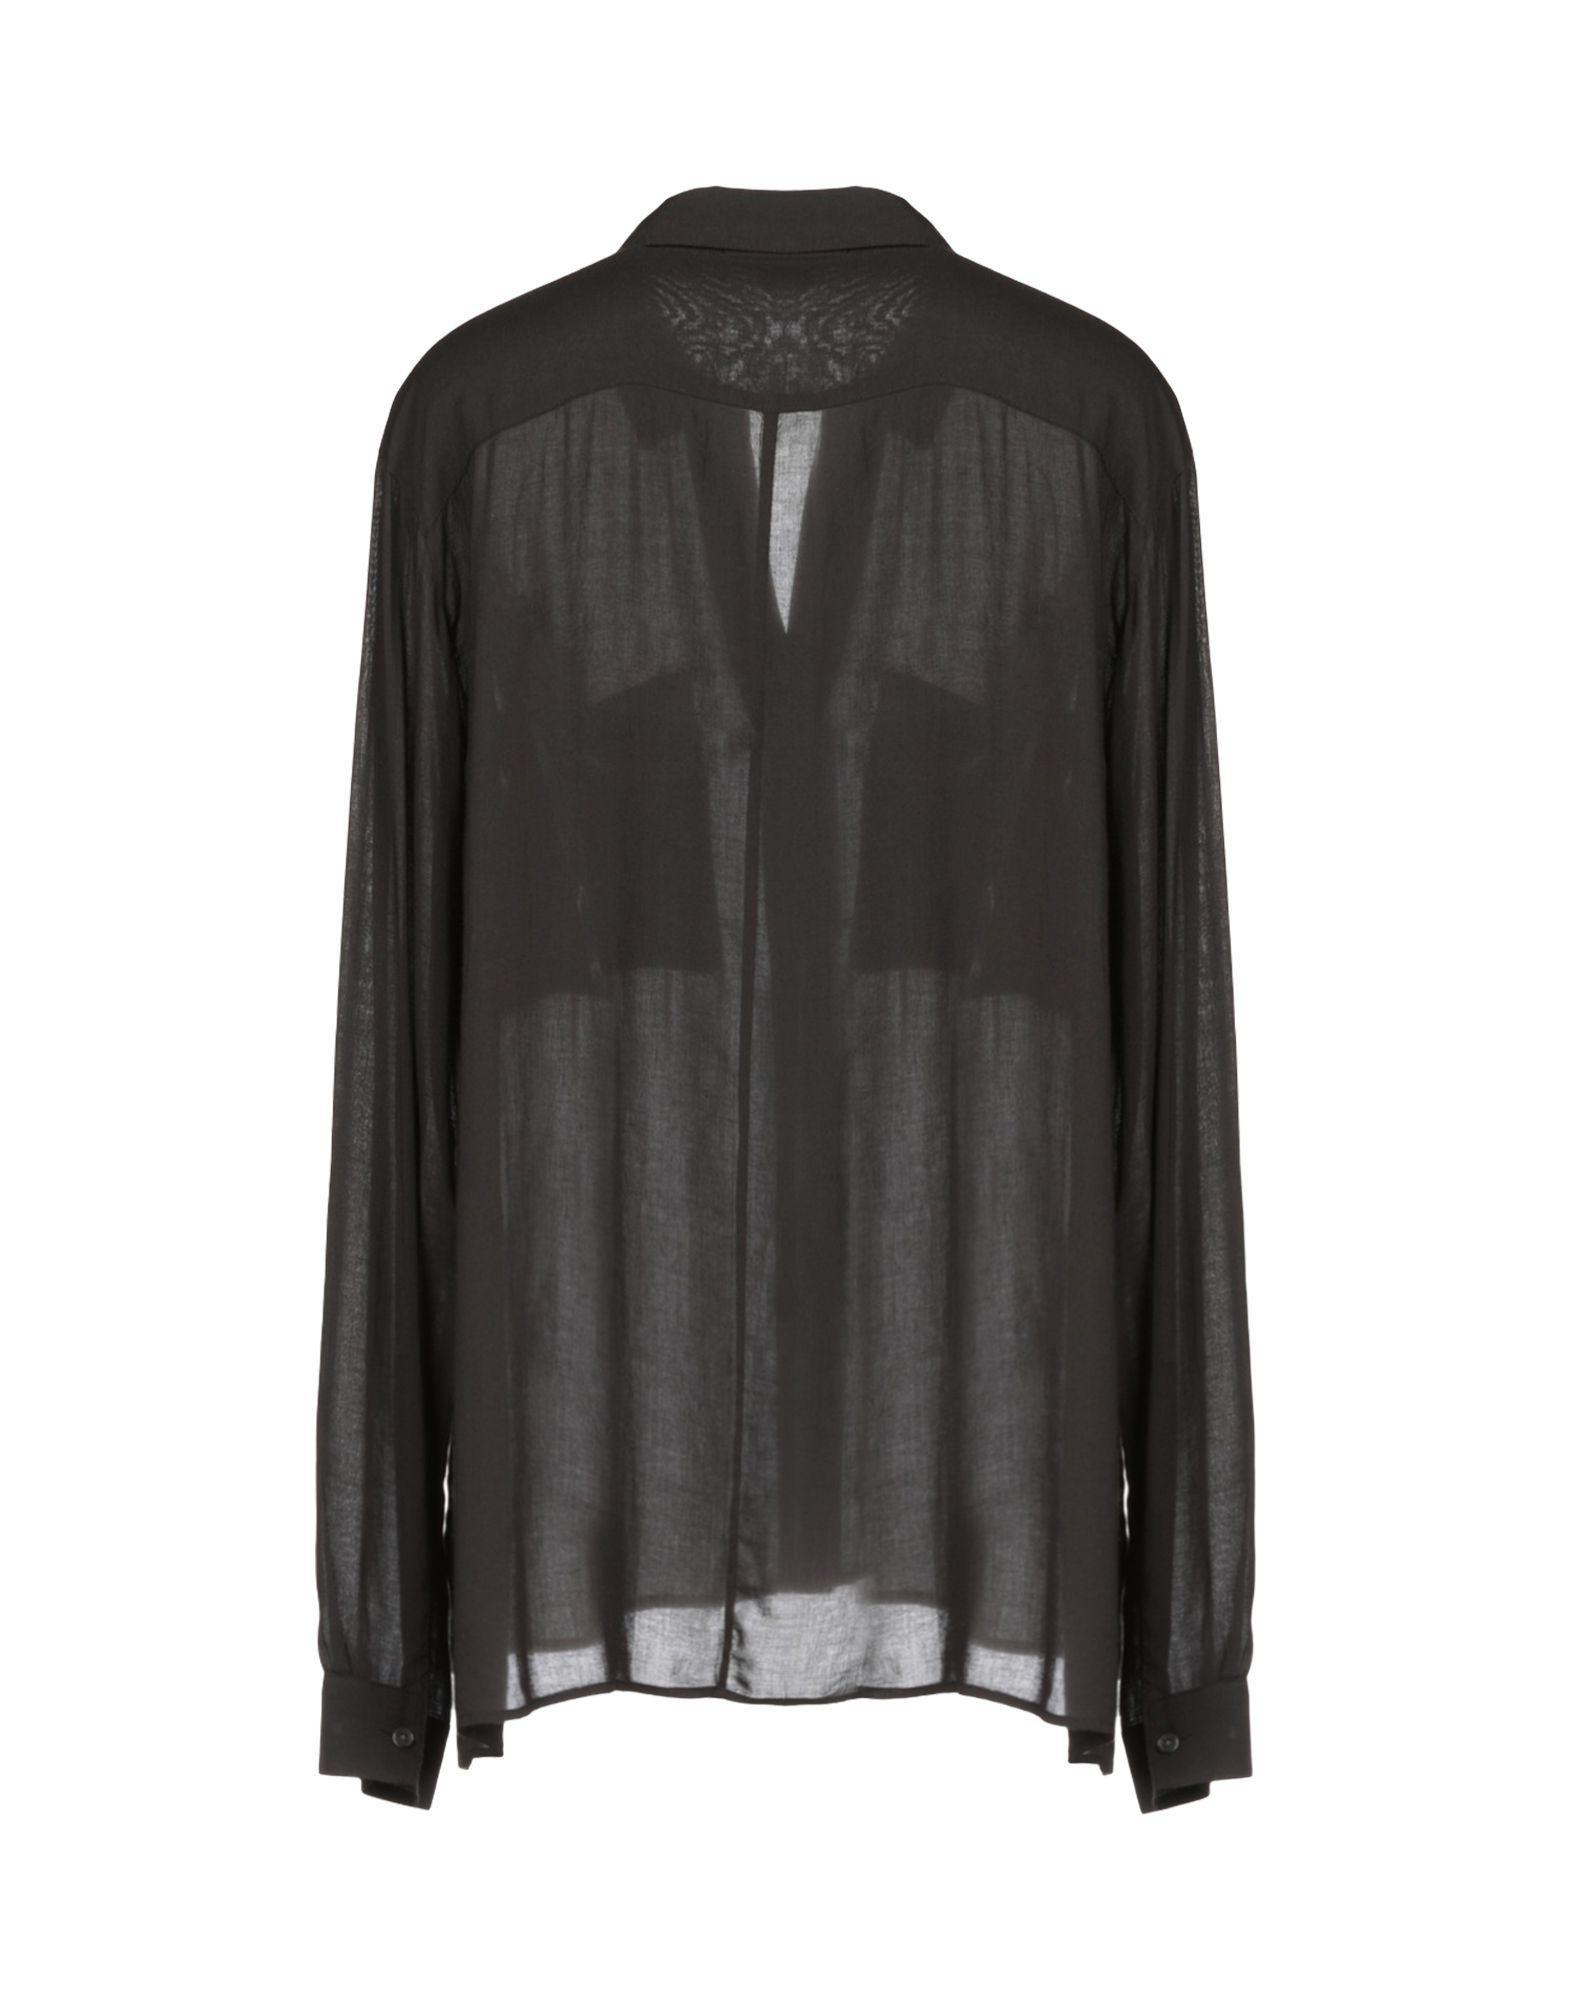 3675663a19 James Perse Shirt in Black - Lyst